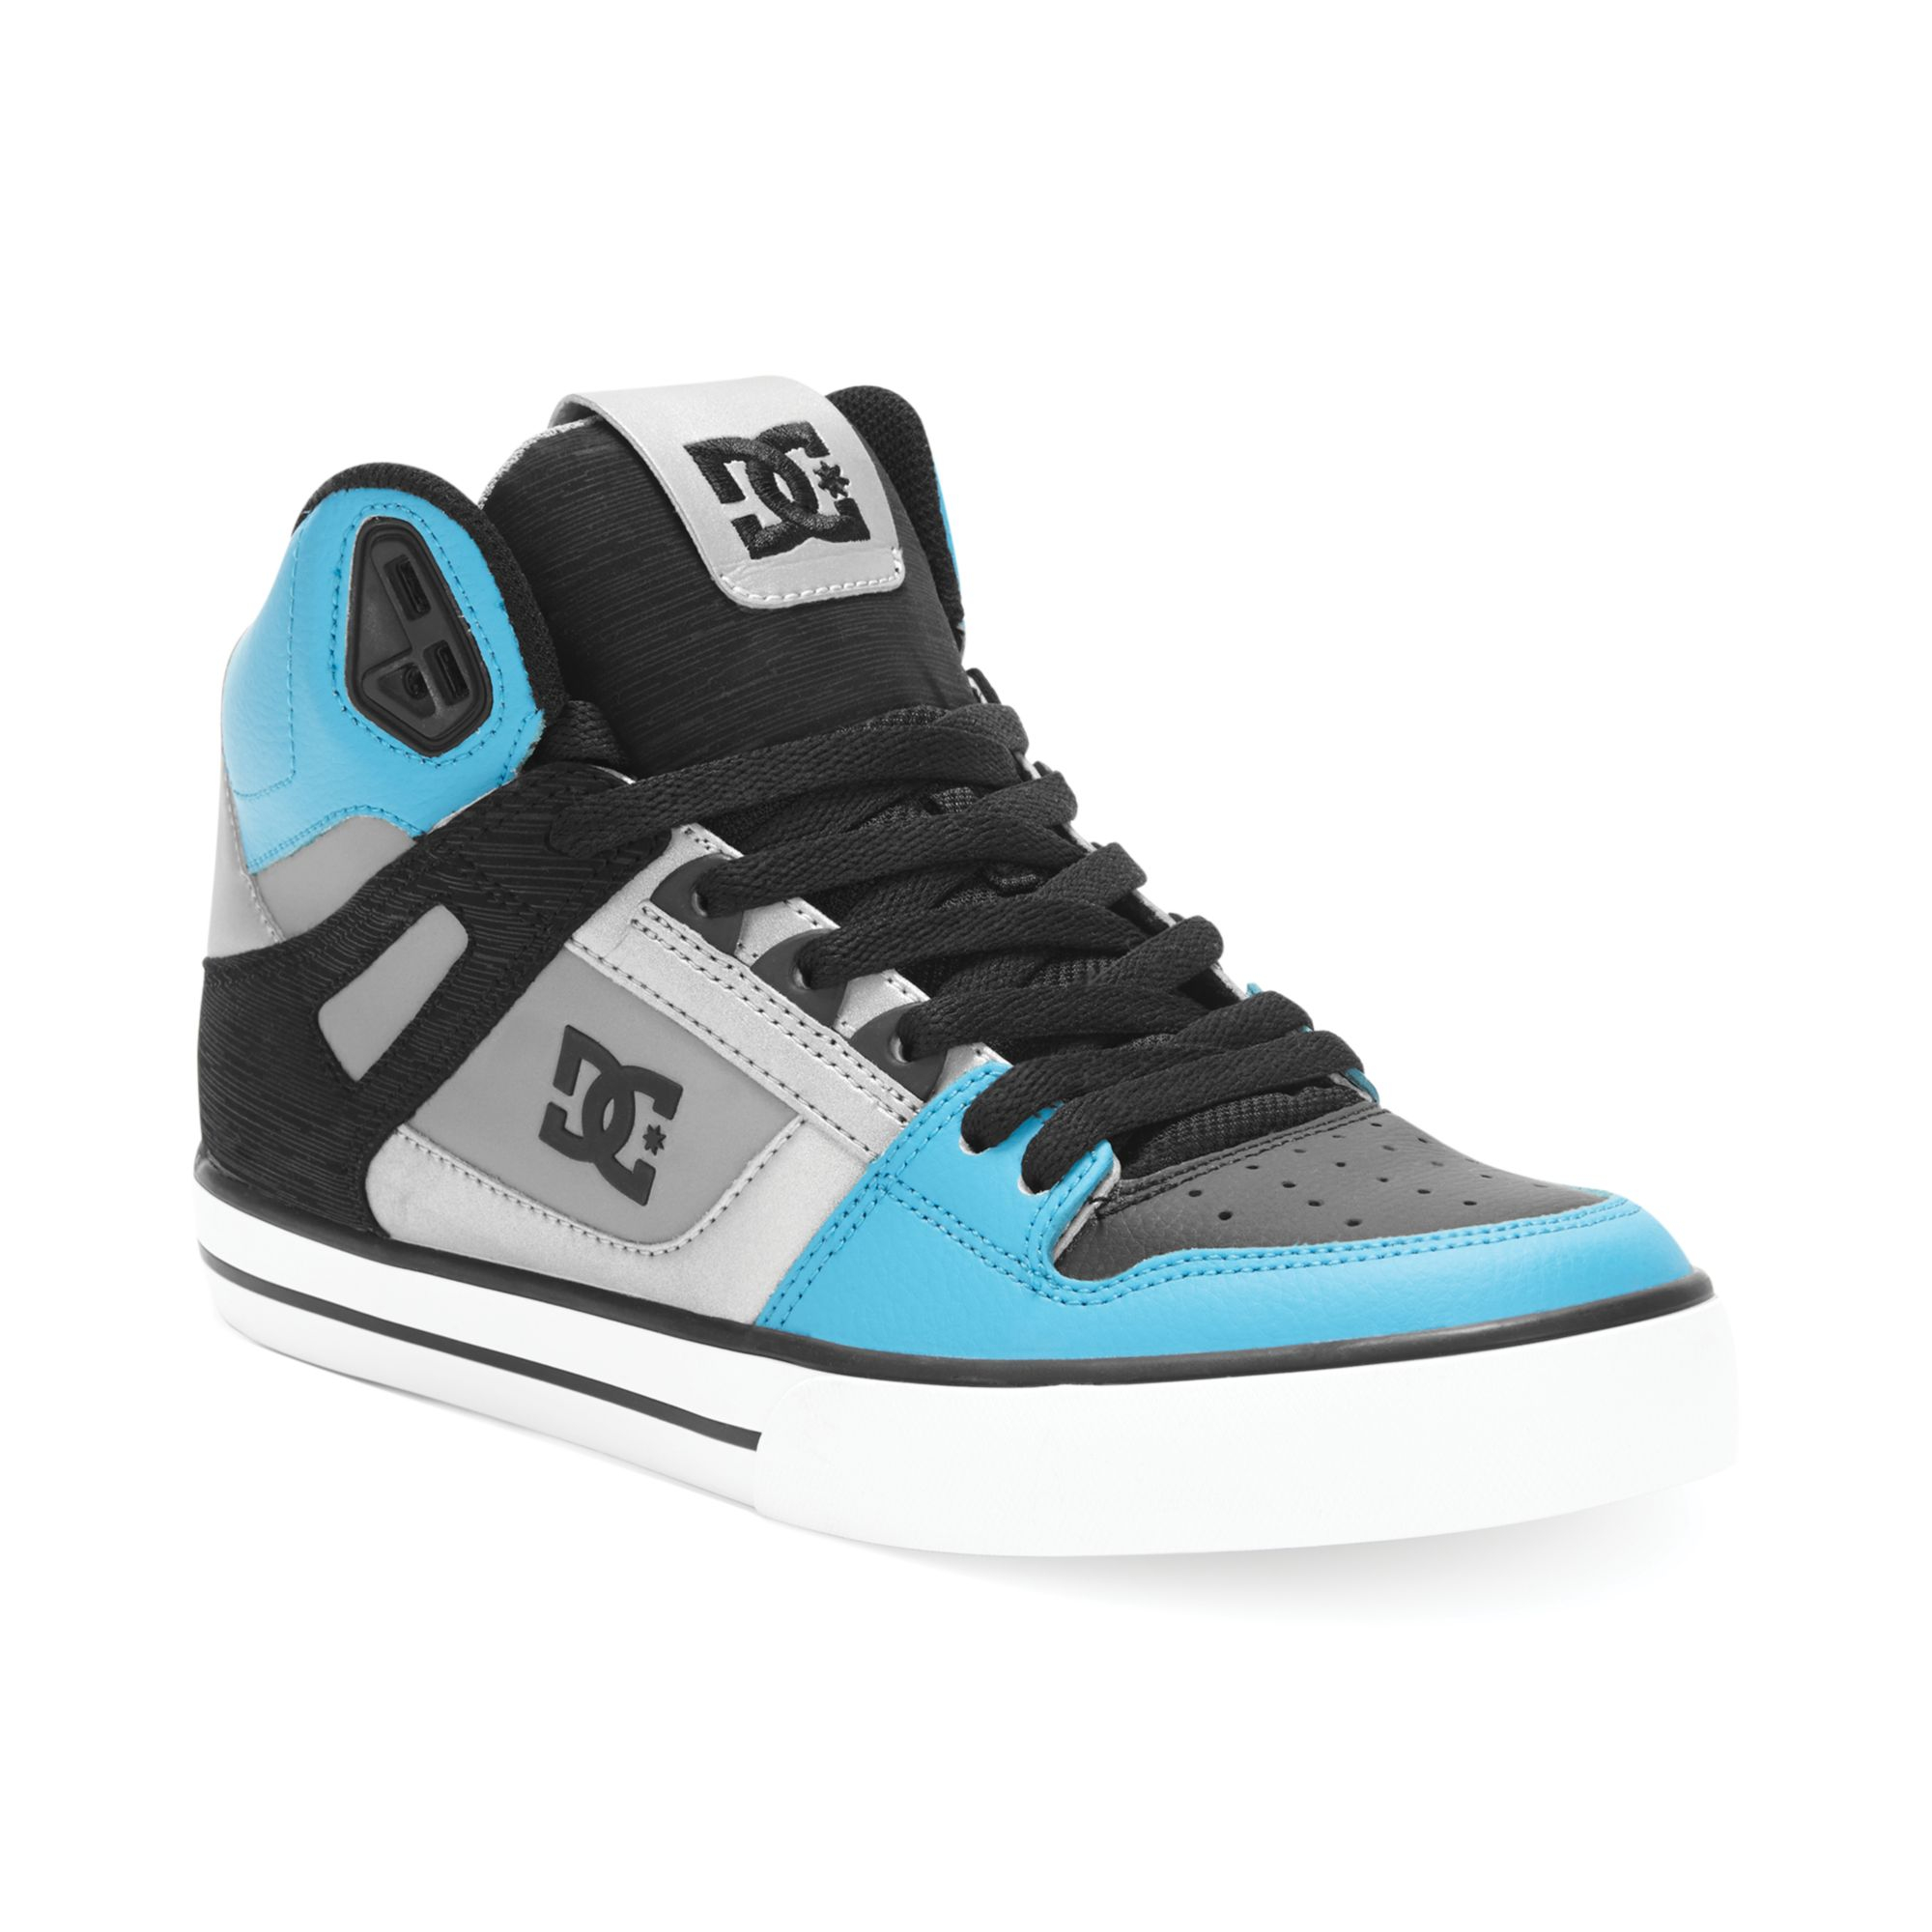 16d3d10c1386 DC Shoes Spartan High Wc Sneakers in Blue for Men - Lyst